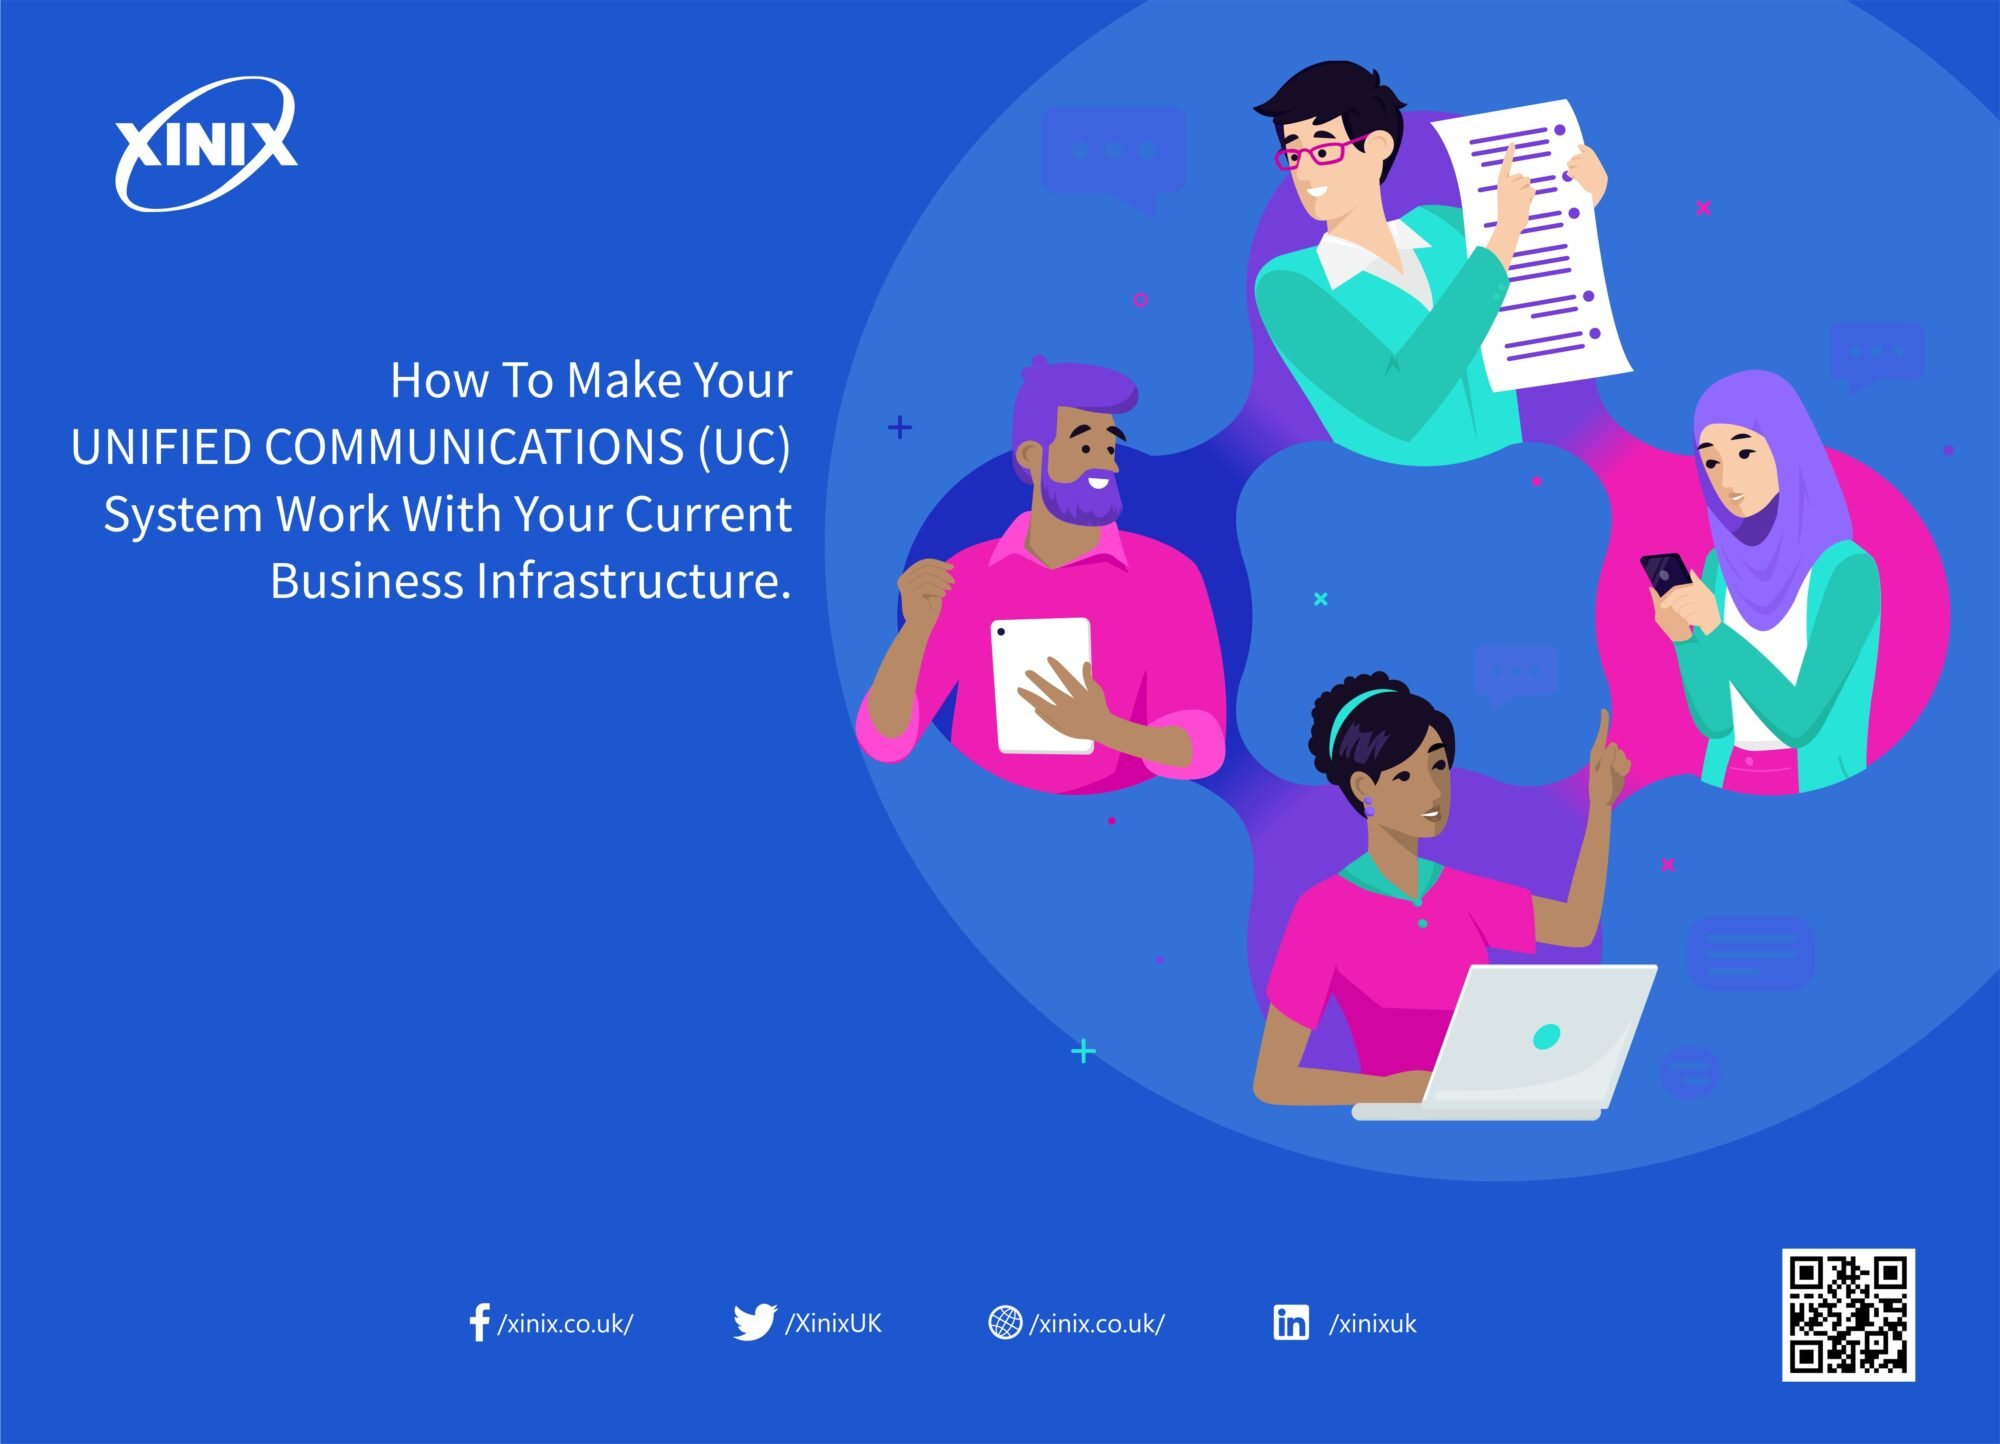 How To Make Your Unified Communications (UC) System Work With Your Current Business Infrastructure.